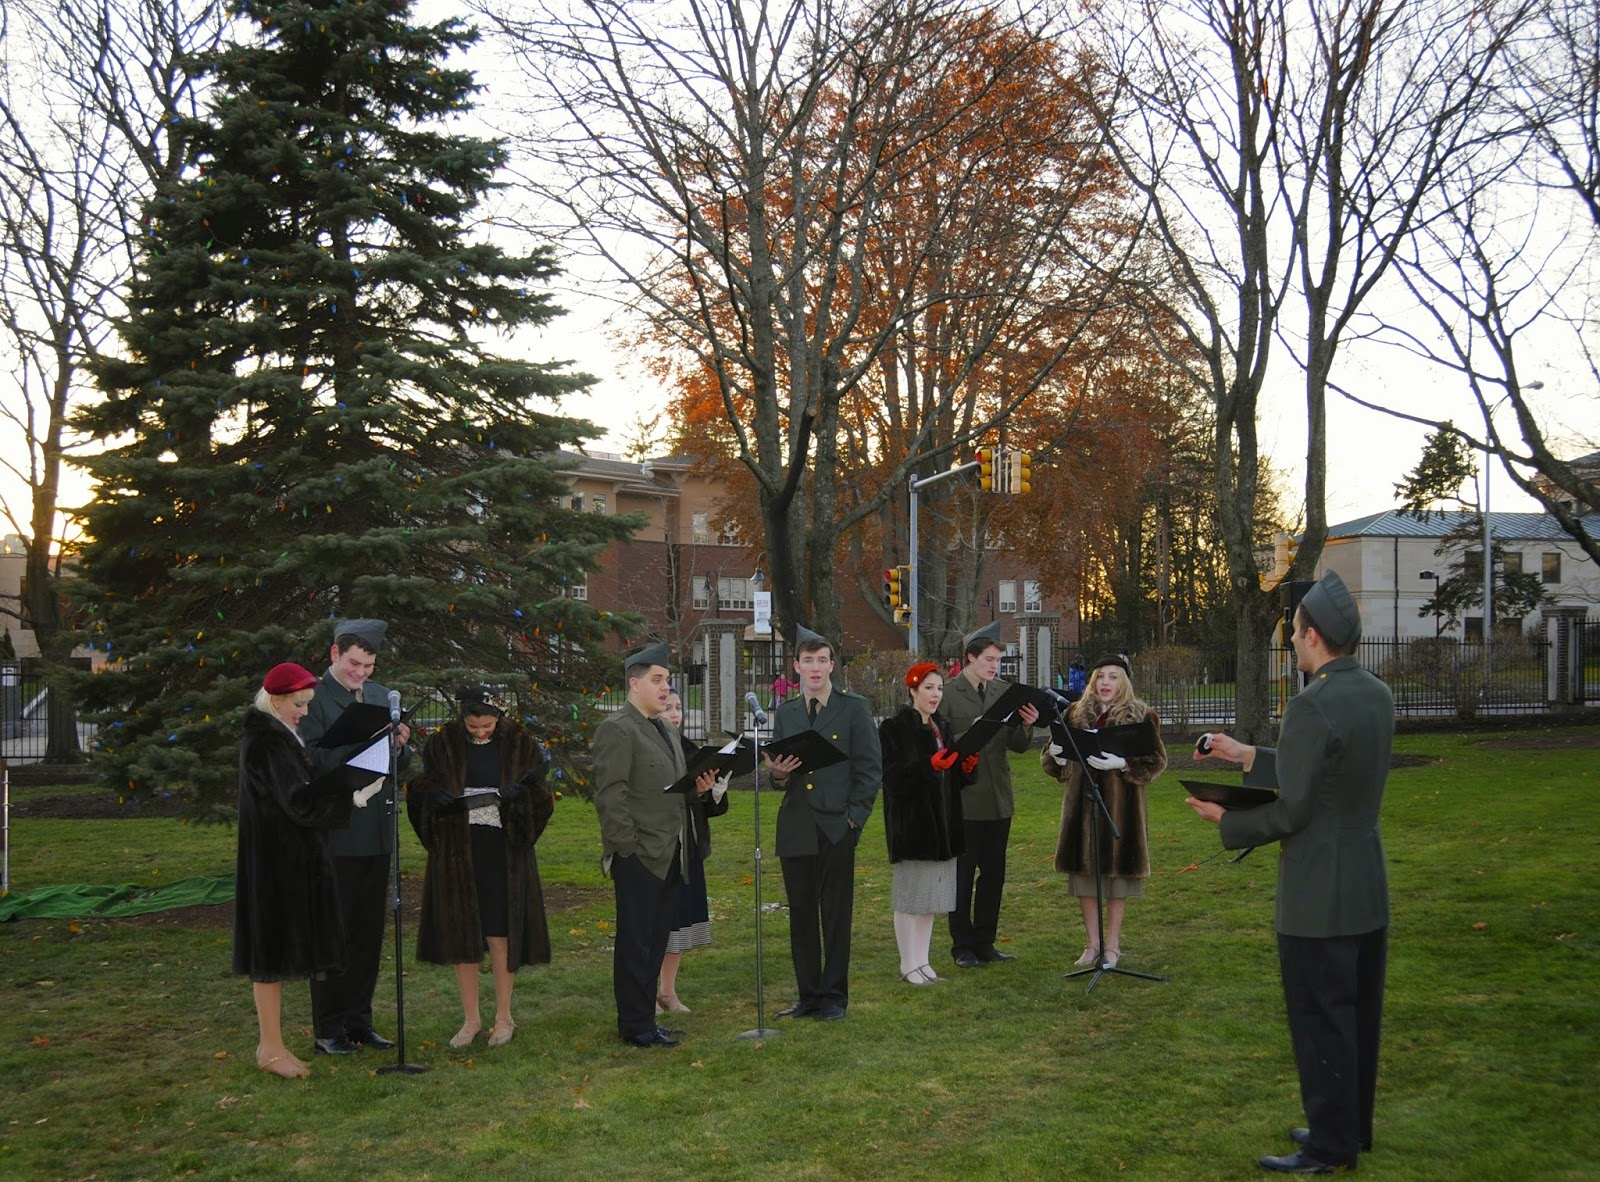 Holiday stroll carolers